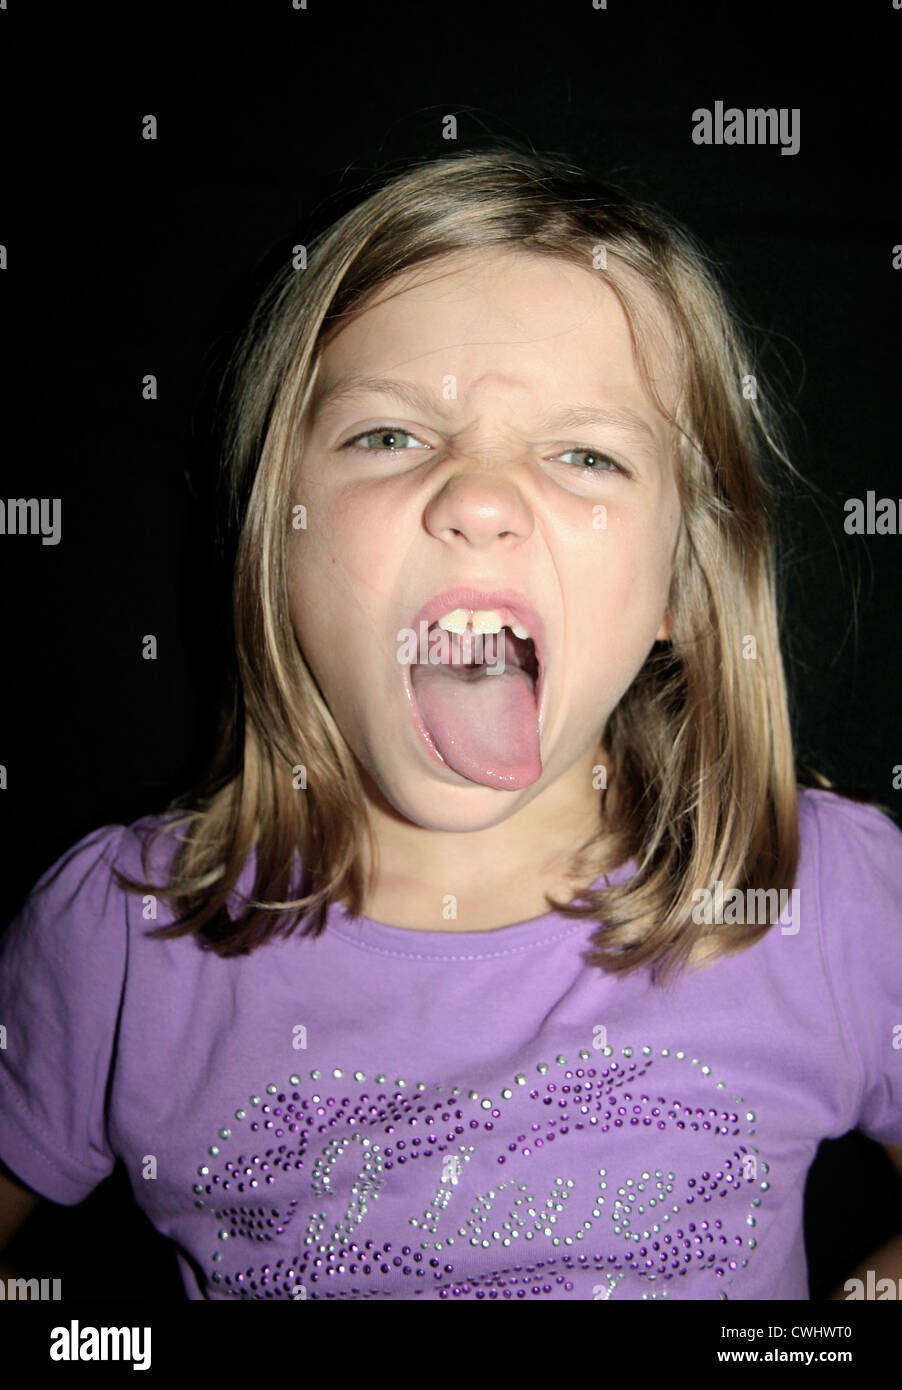 girl tongue girl,naughty,sticking out tongue,grimace - Stock Image